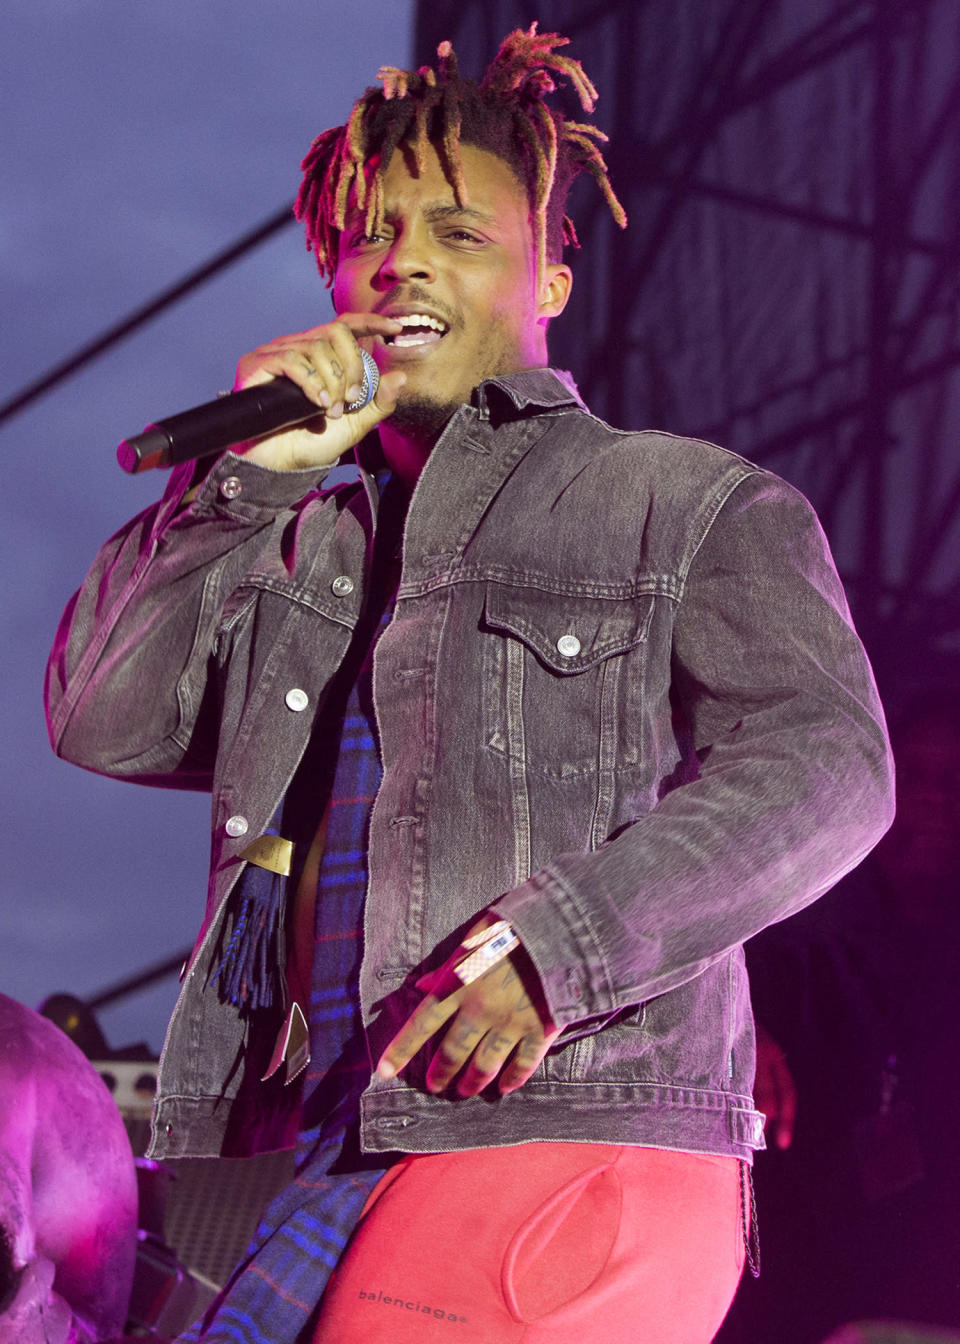 """FILE - In this May 15, 2019 file photo, Juice WRLD performs in concert during his """"Death Race for Love Tour"""" at The Skyline Stage at The Mann Center for the Performing Arts in Philadelphia. The 21-track album """"Legends Never Die"""" set several records when it debuted at No. 1 on the Billboard 200 albums chart, but failed to receive a Grammy nomination. (Photo by Owen Sweeney/Invision/AP, File)"""